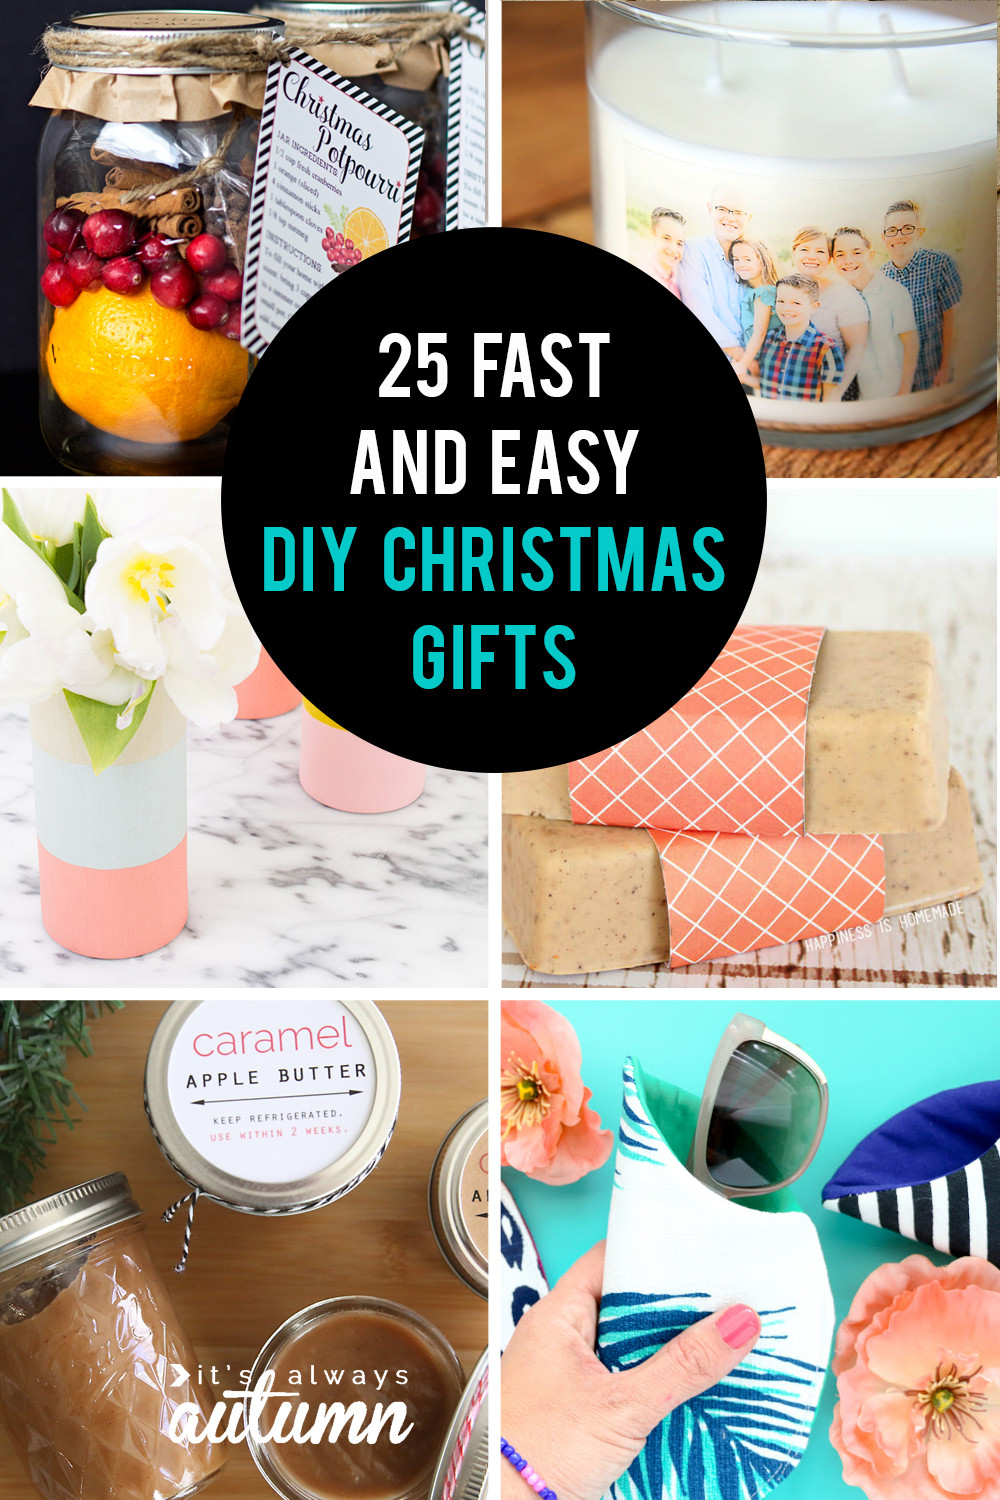 Best ideas about DIY Christmas Ideas . Save or Pin 25 easy homemade Christmas ts you can make in 15 Now.